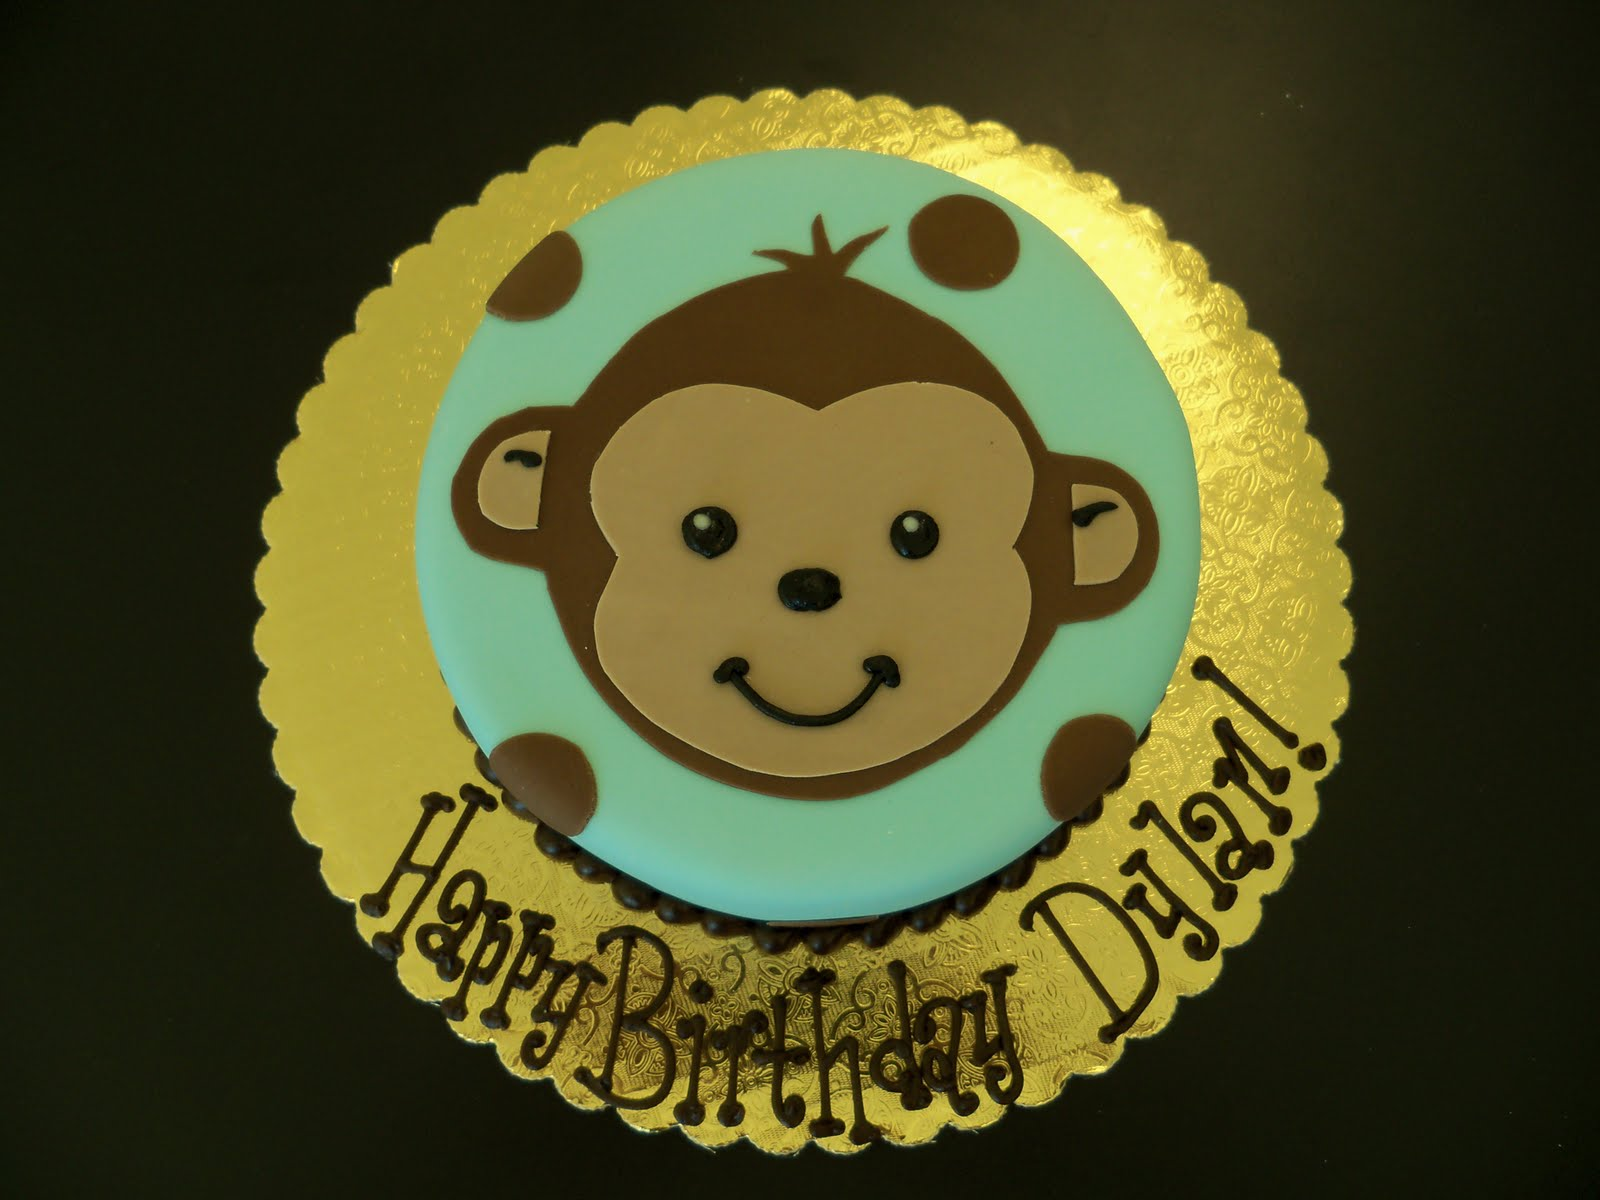 Monkey+birthday+cake.JPG (1600×1200) | Cakes | Pinterest